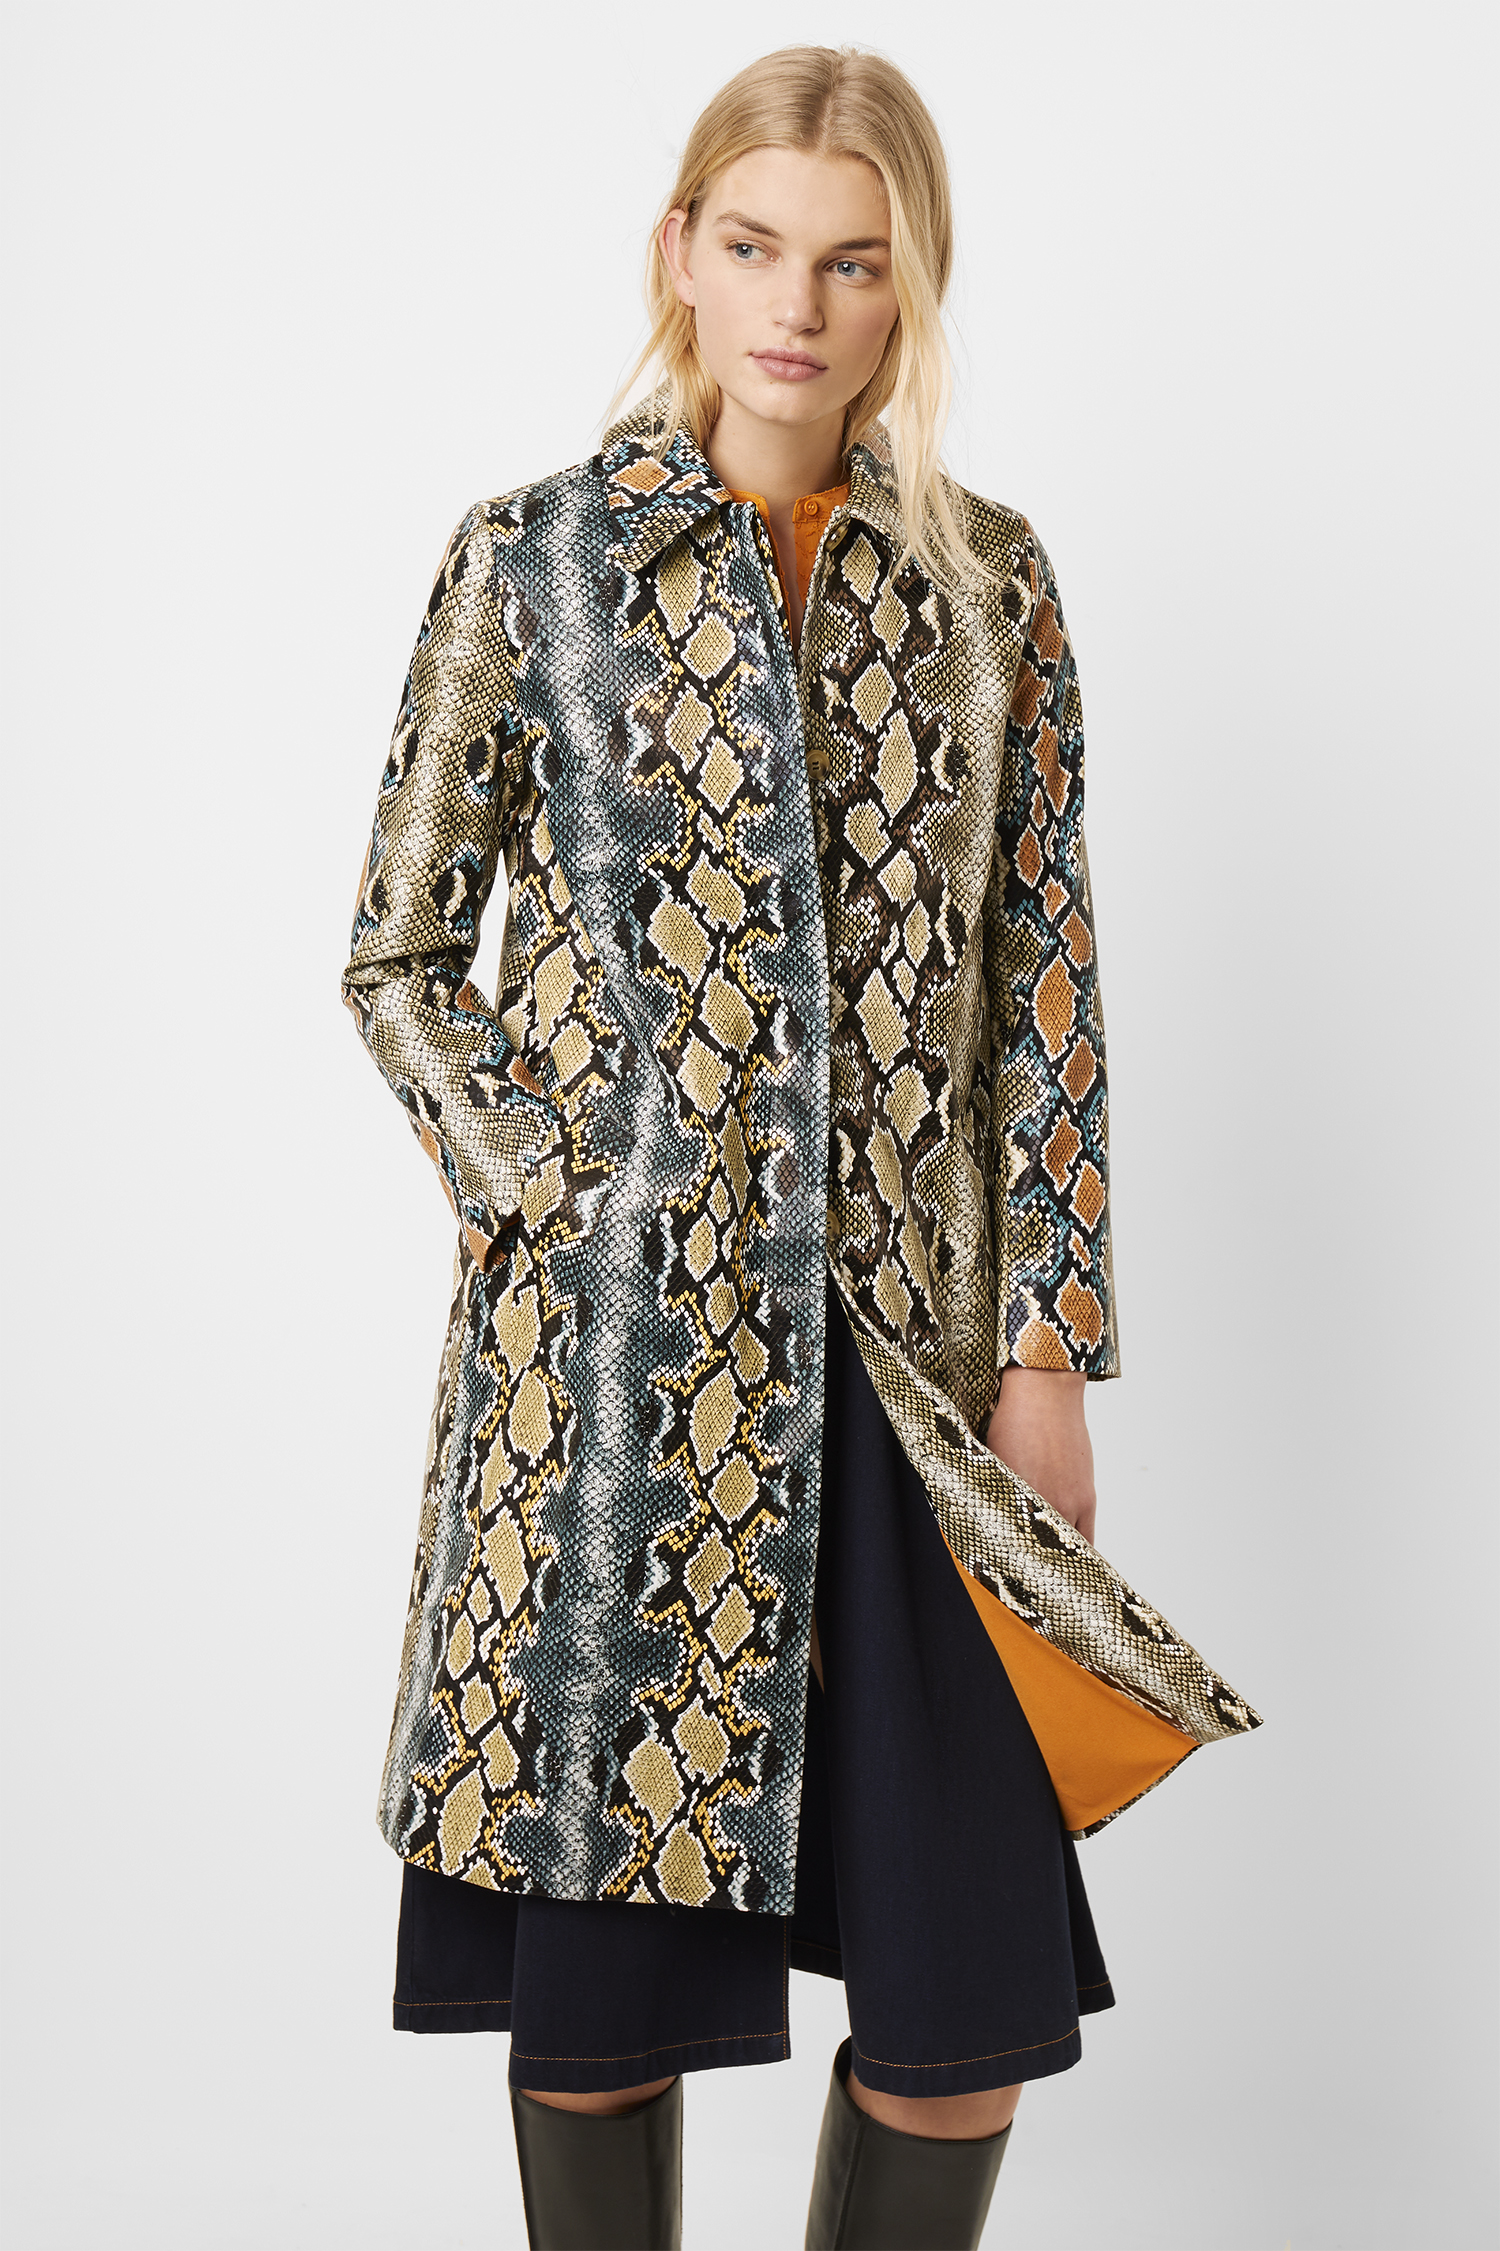 Women's Coats on Sale | Save up to 70